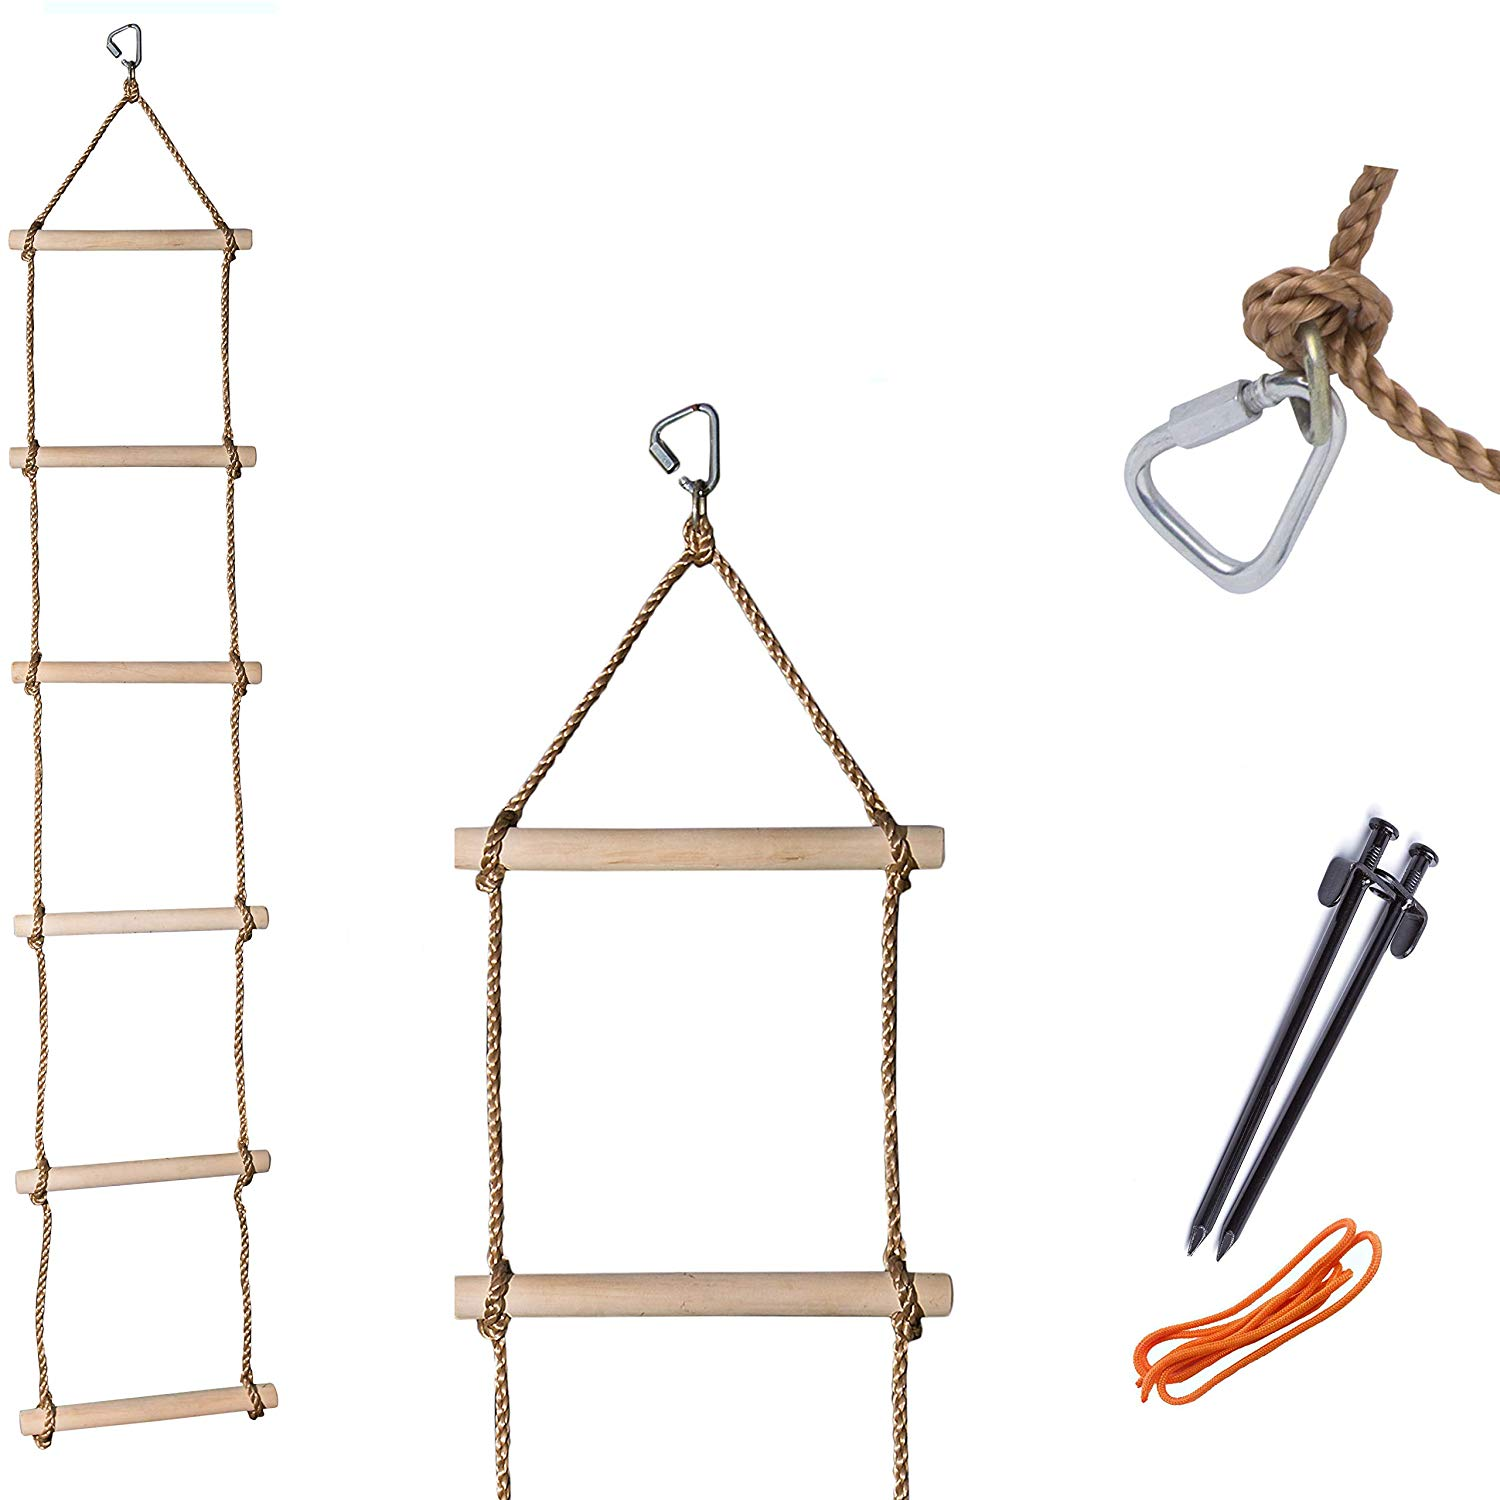 clip library stock Rope ladder clipart. Cateam for kids durable.